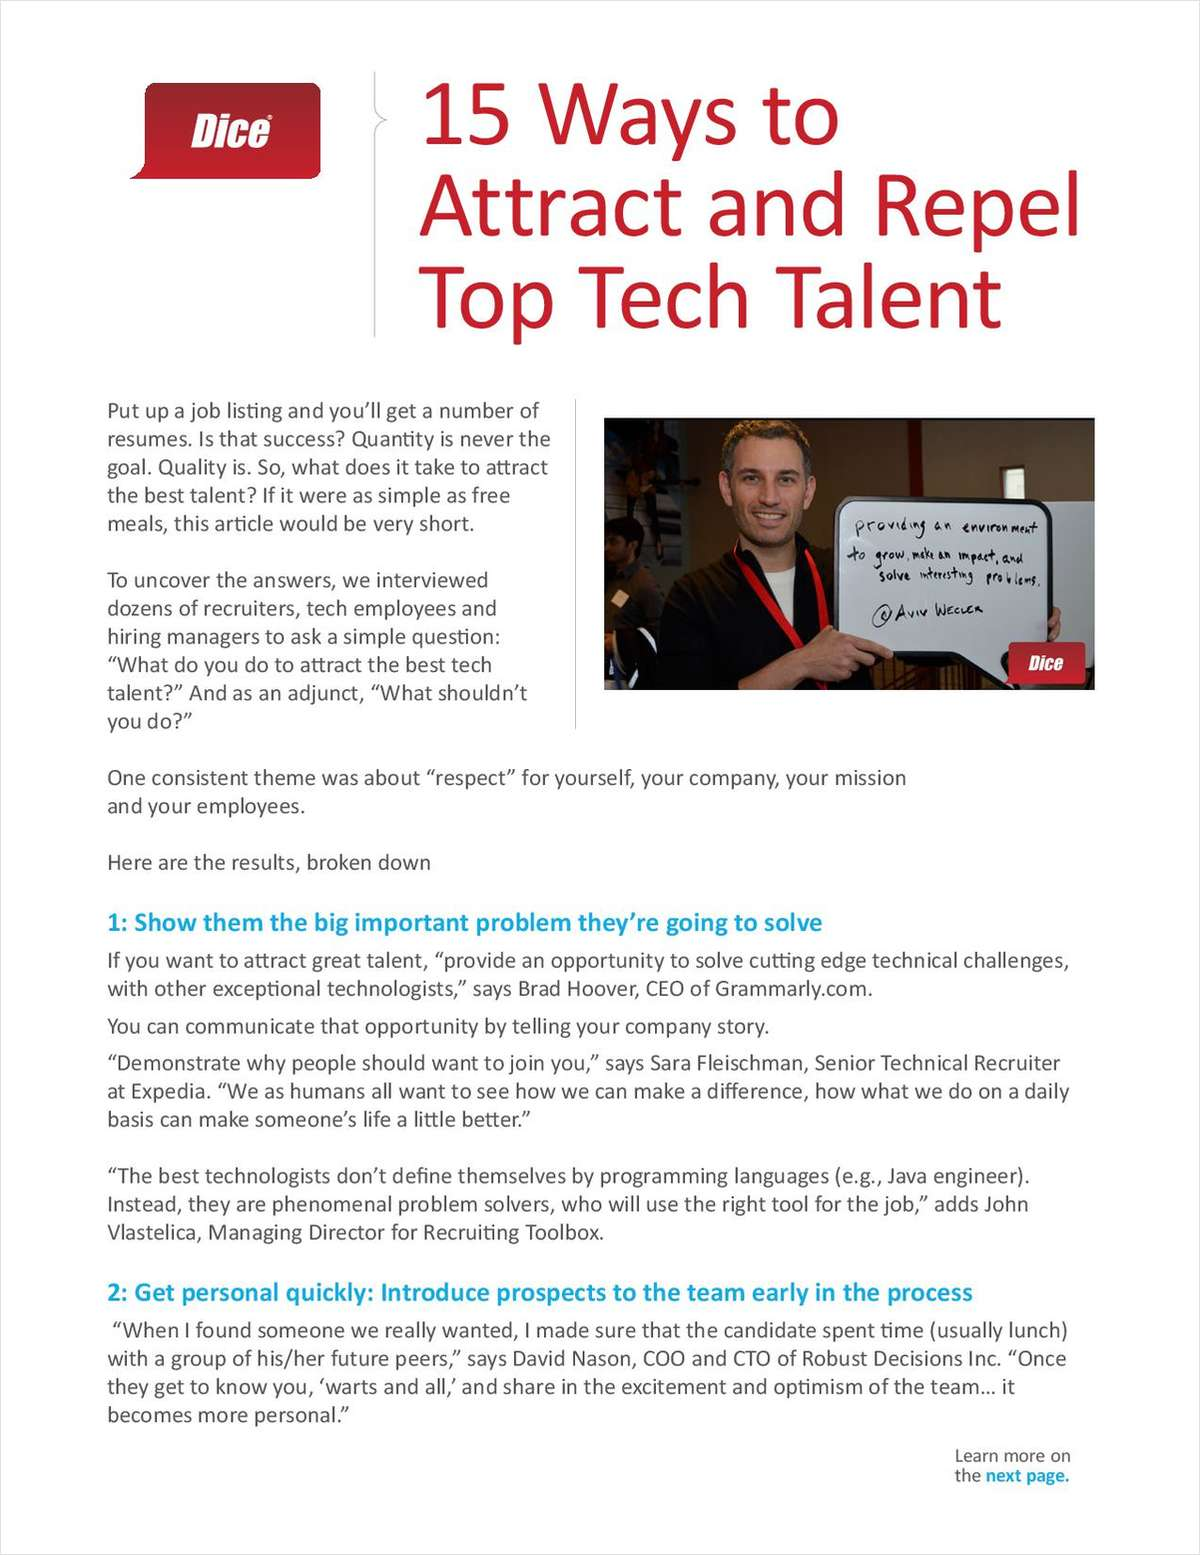 15 Ways to Attract and Repel Top Tech Talent